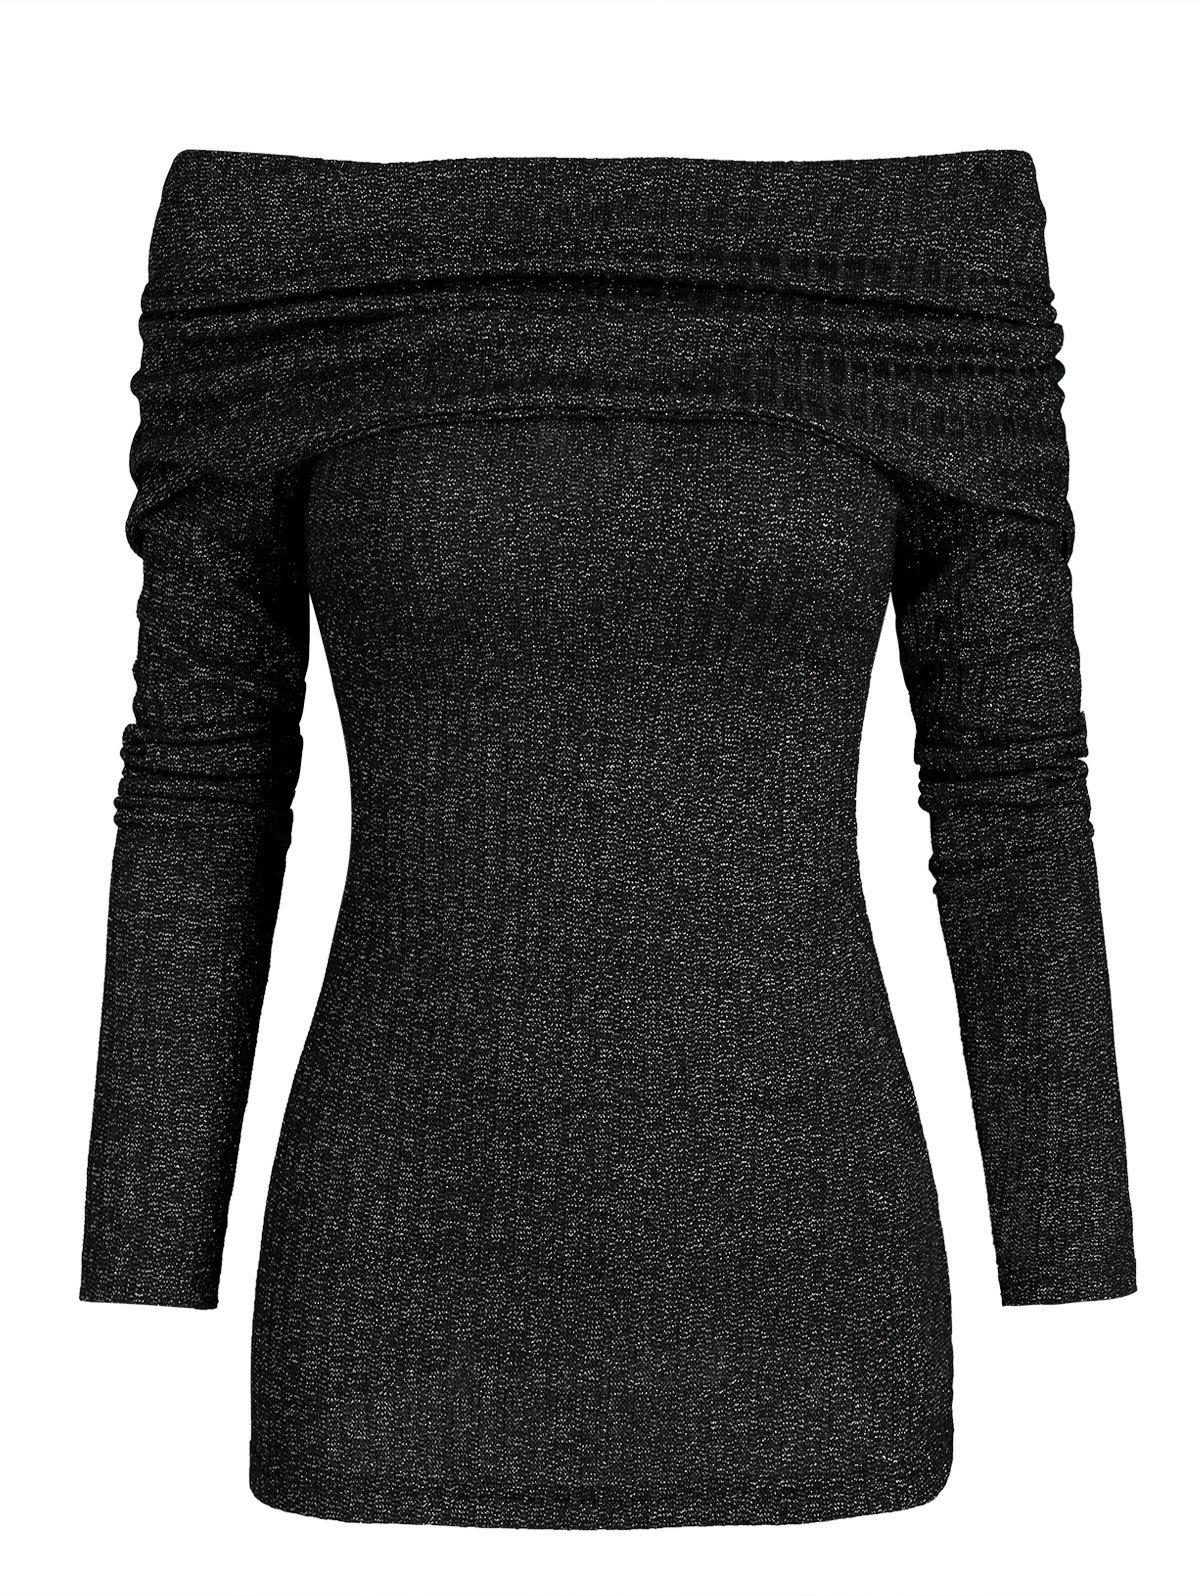 Folded Bowknot Metallic Thread Knitwear - BLACK M